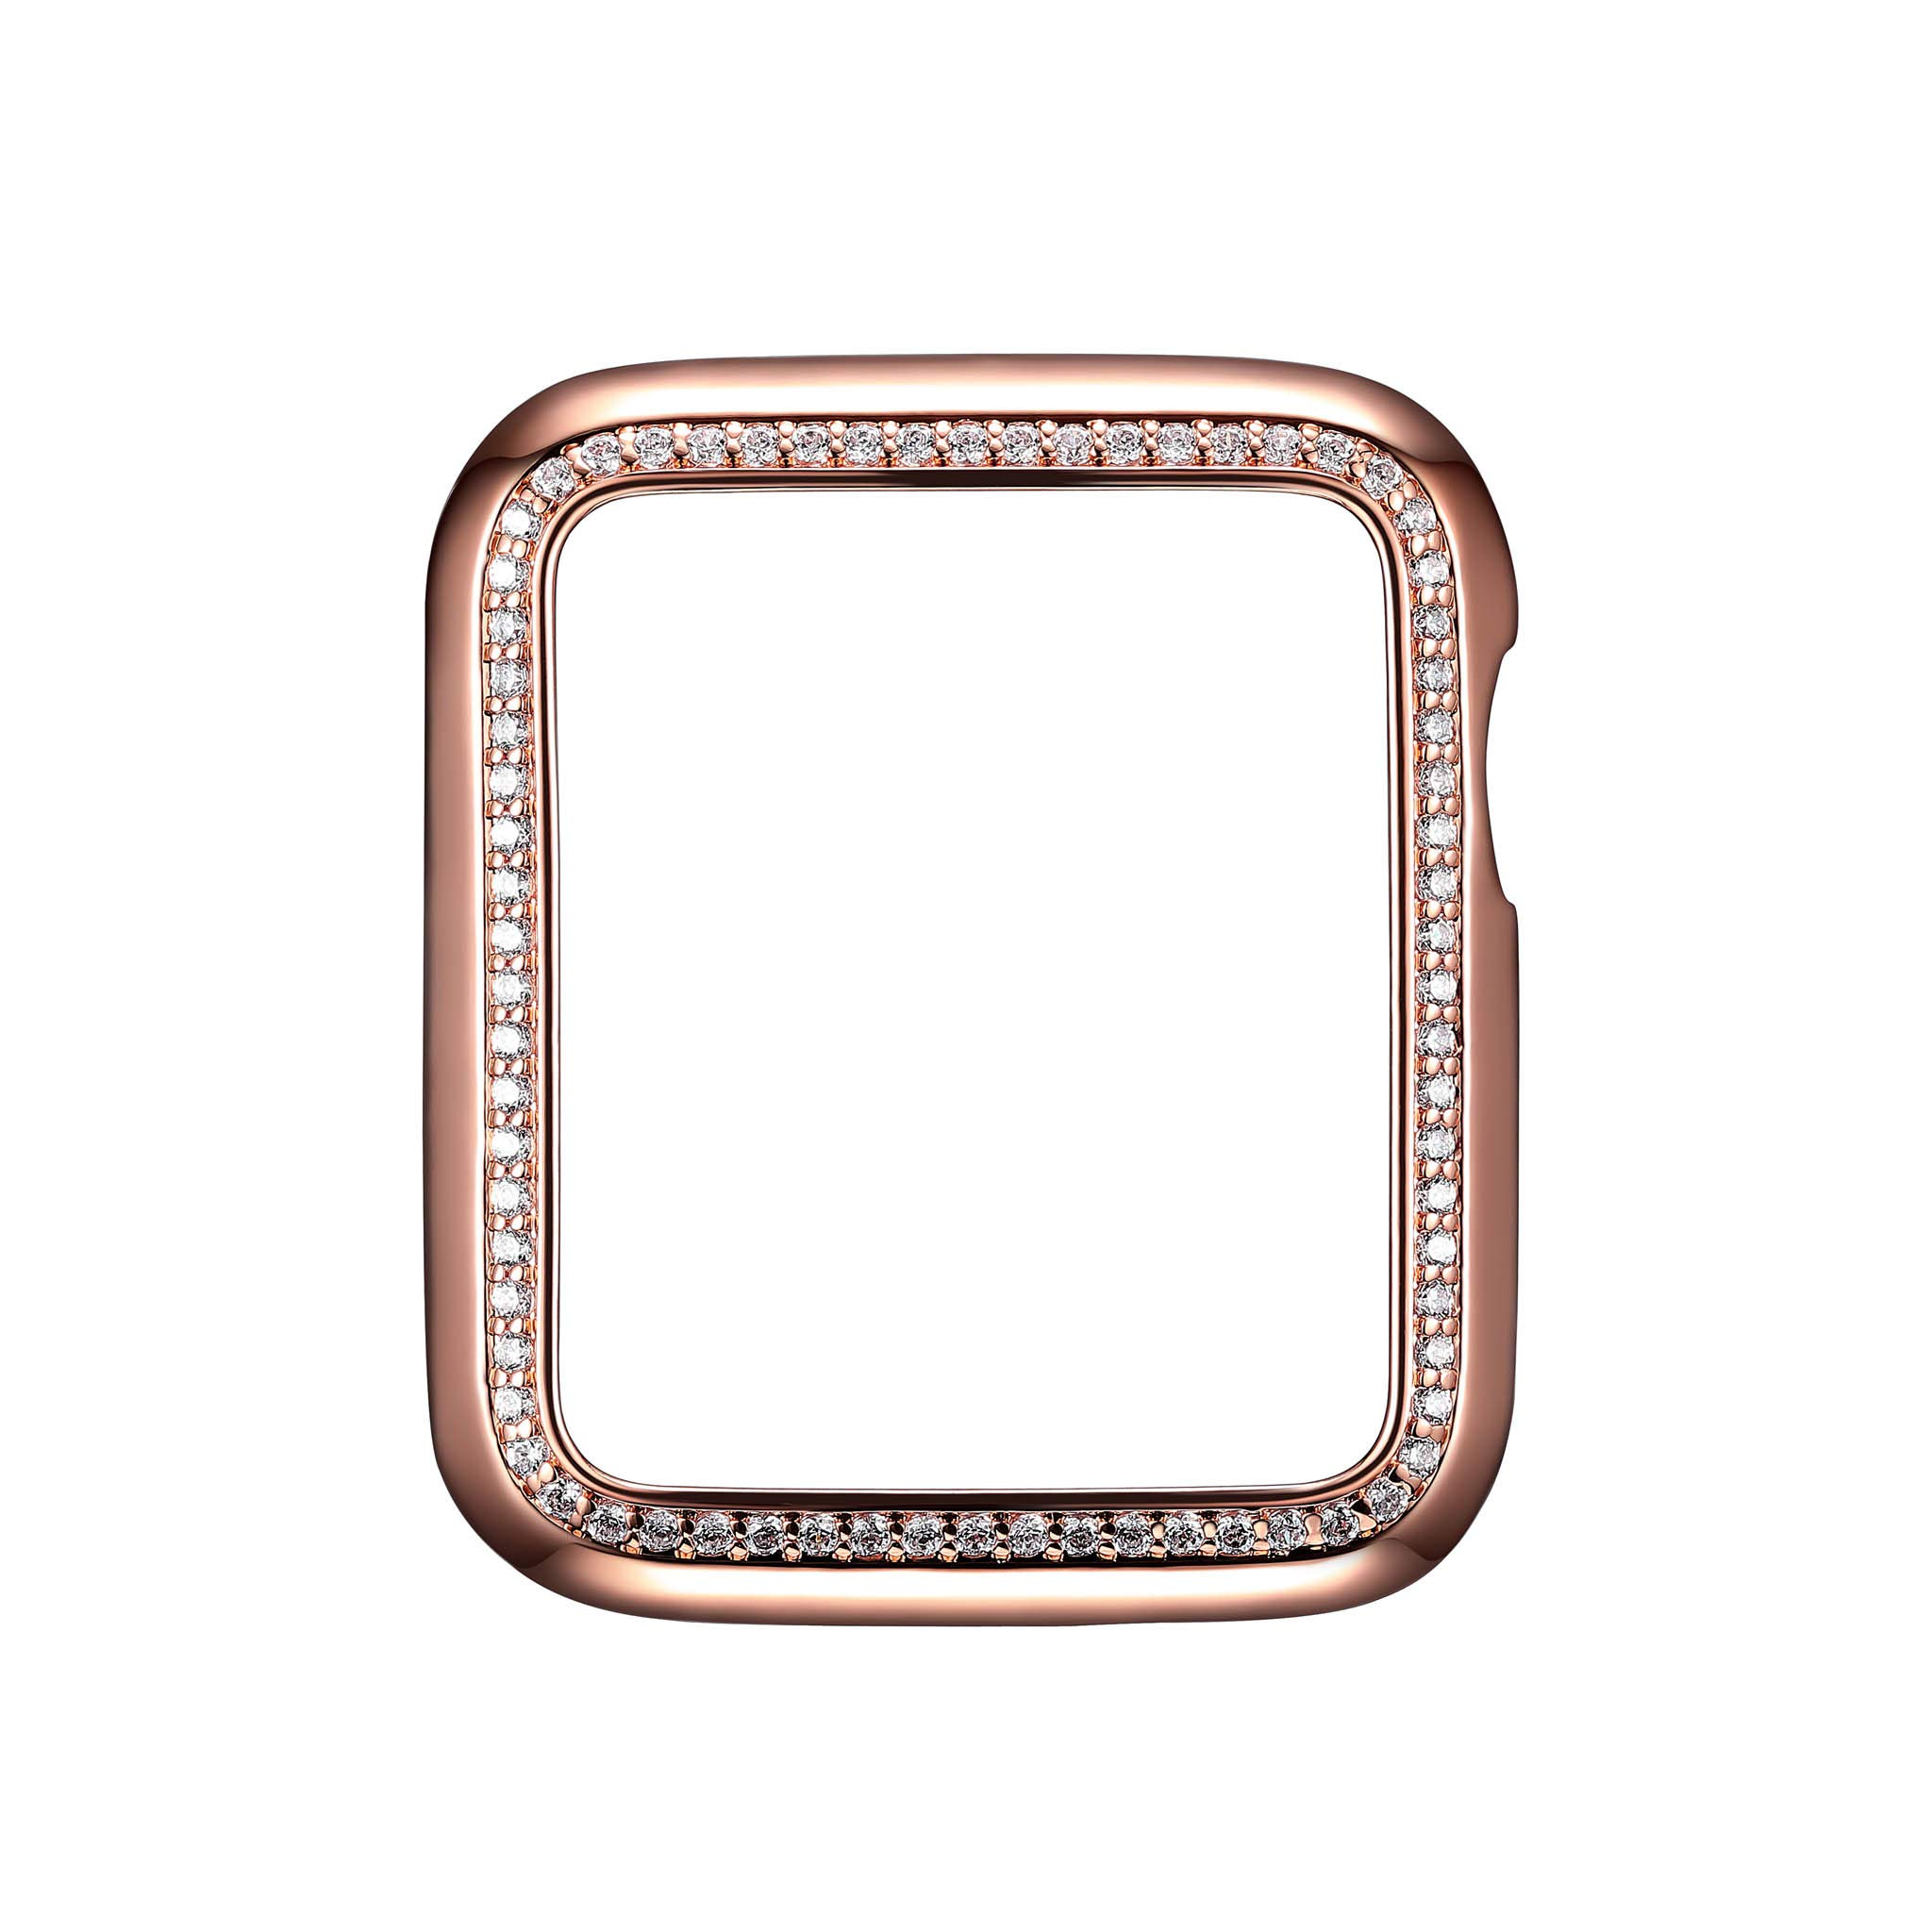 14K Rose Gold Plated Jewelry-Style Apple Watch Case with Cubic Zirconia CZ Border - Small (Fits 38mm iWatch)